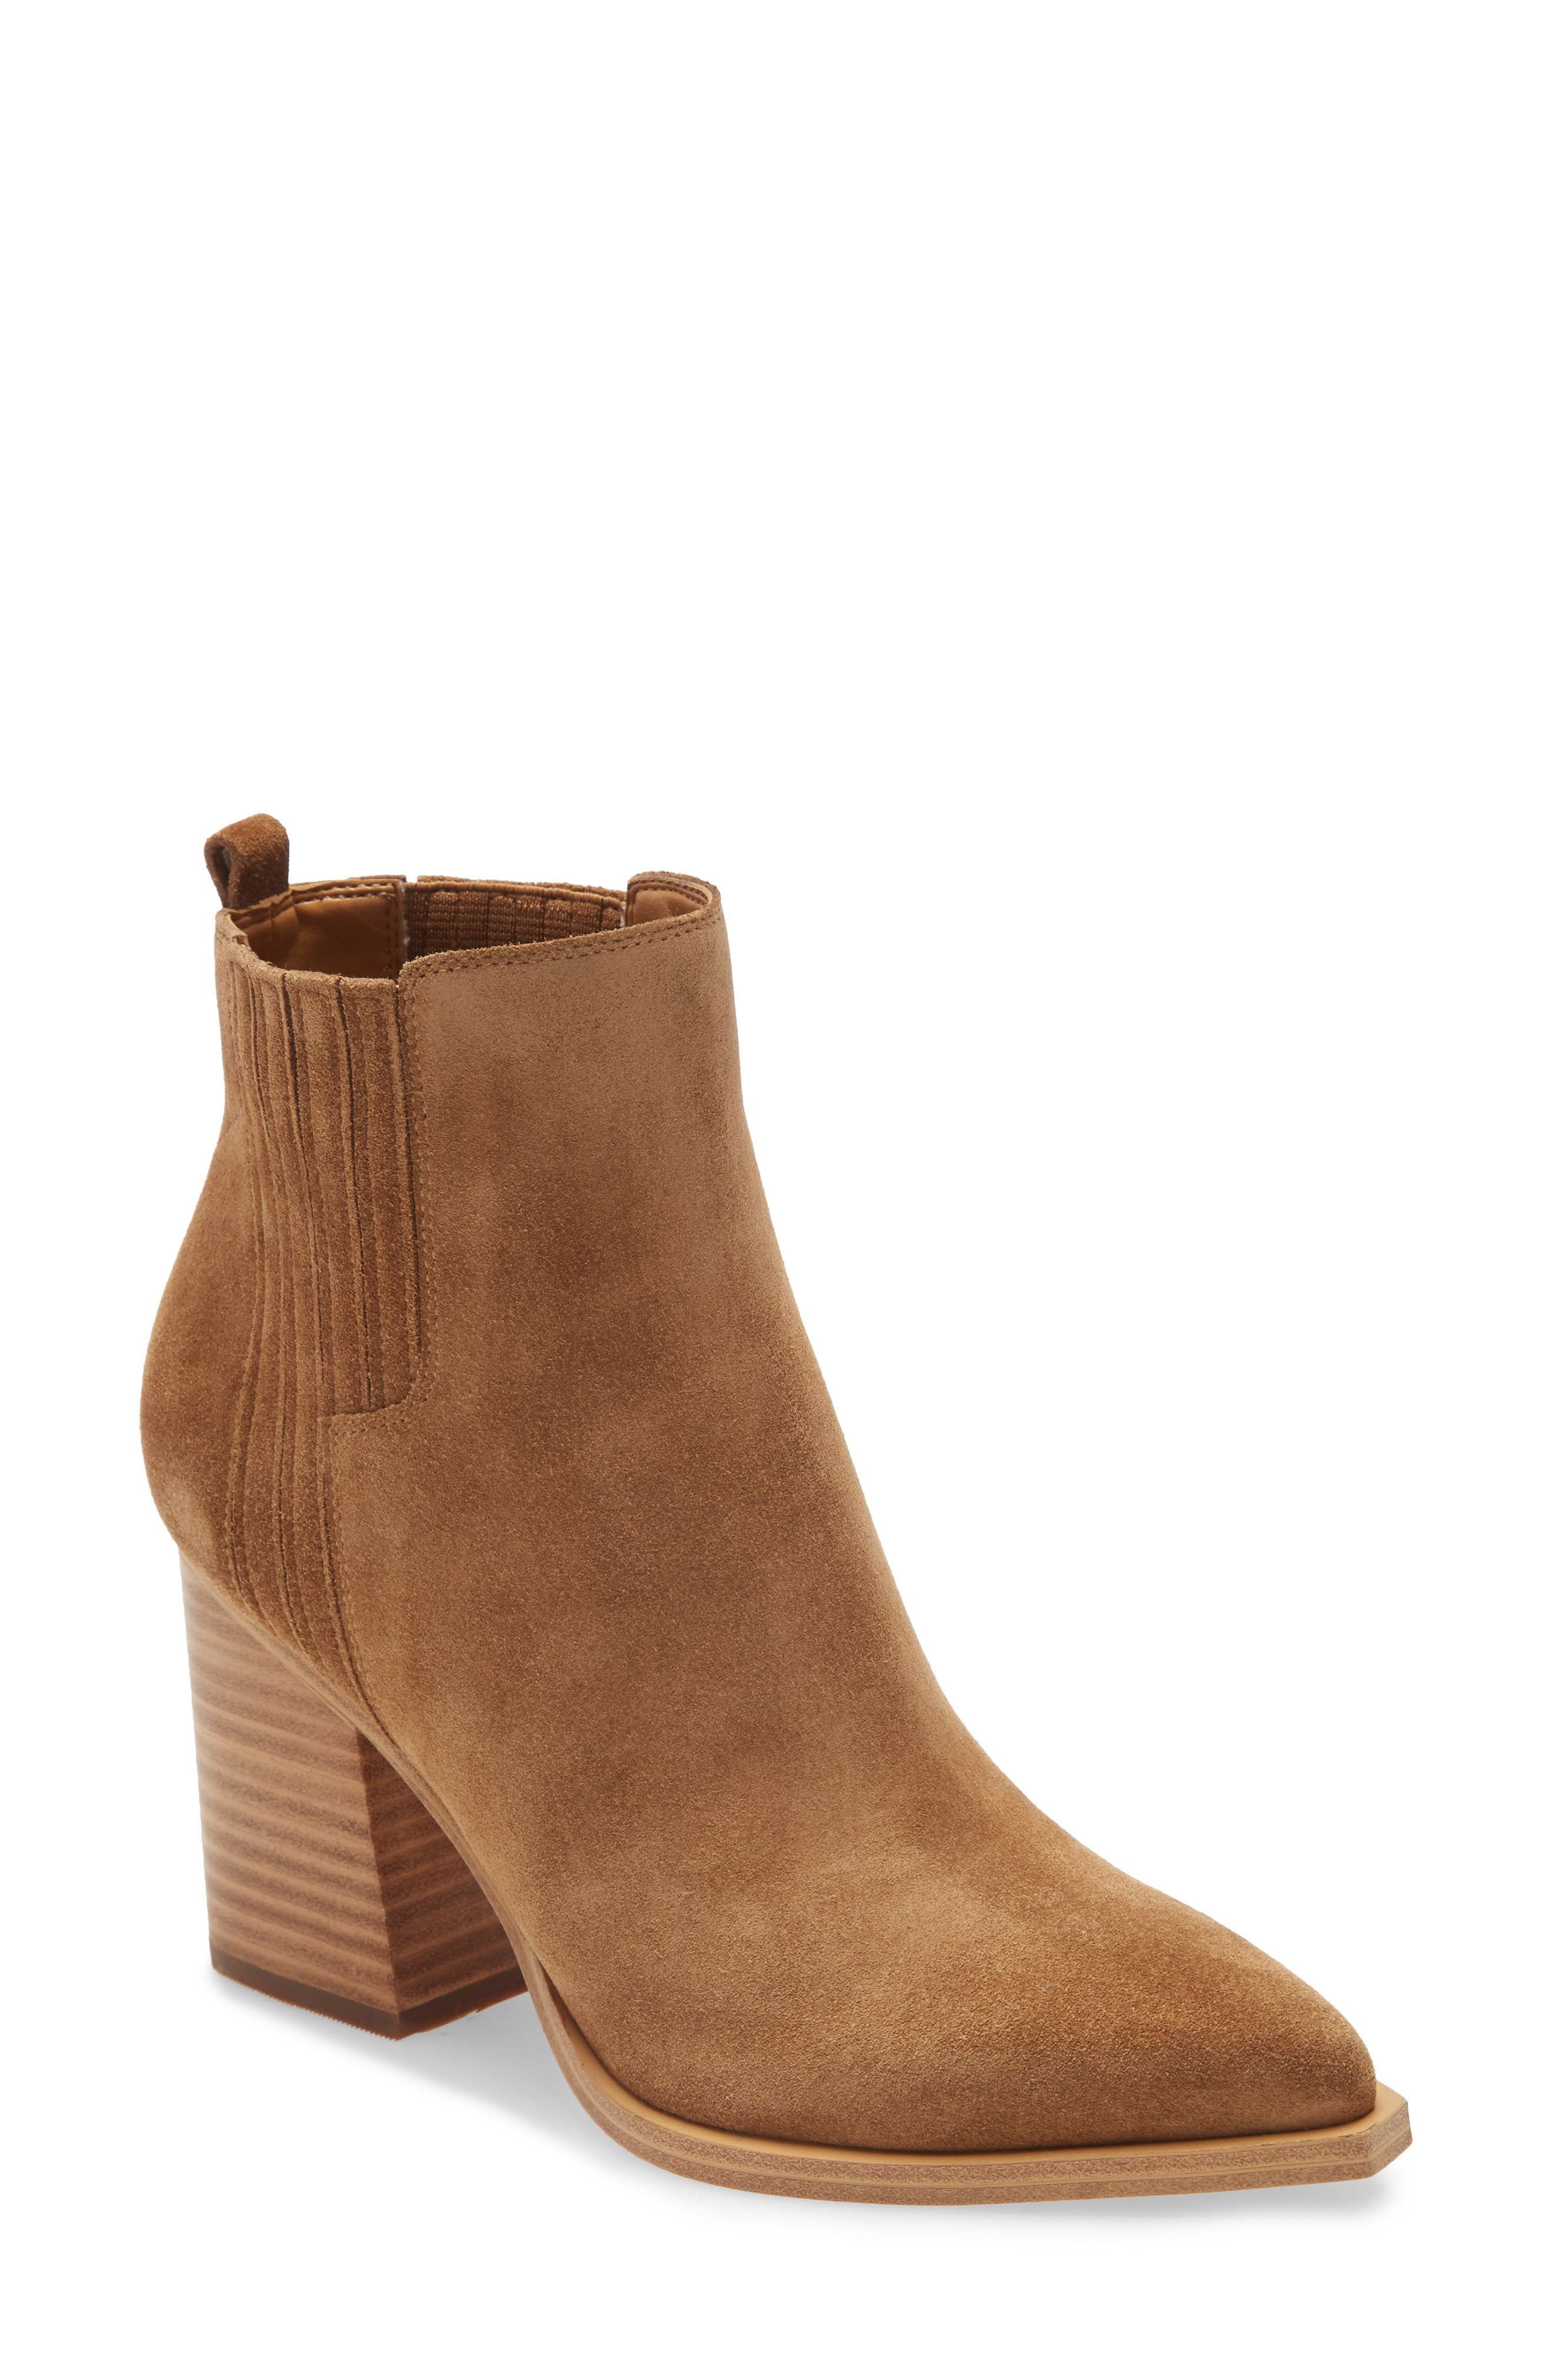 Image of Marc Fisher LTD Oshay Suede Bootie